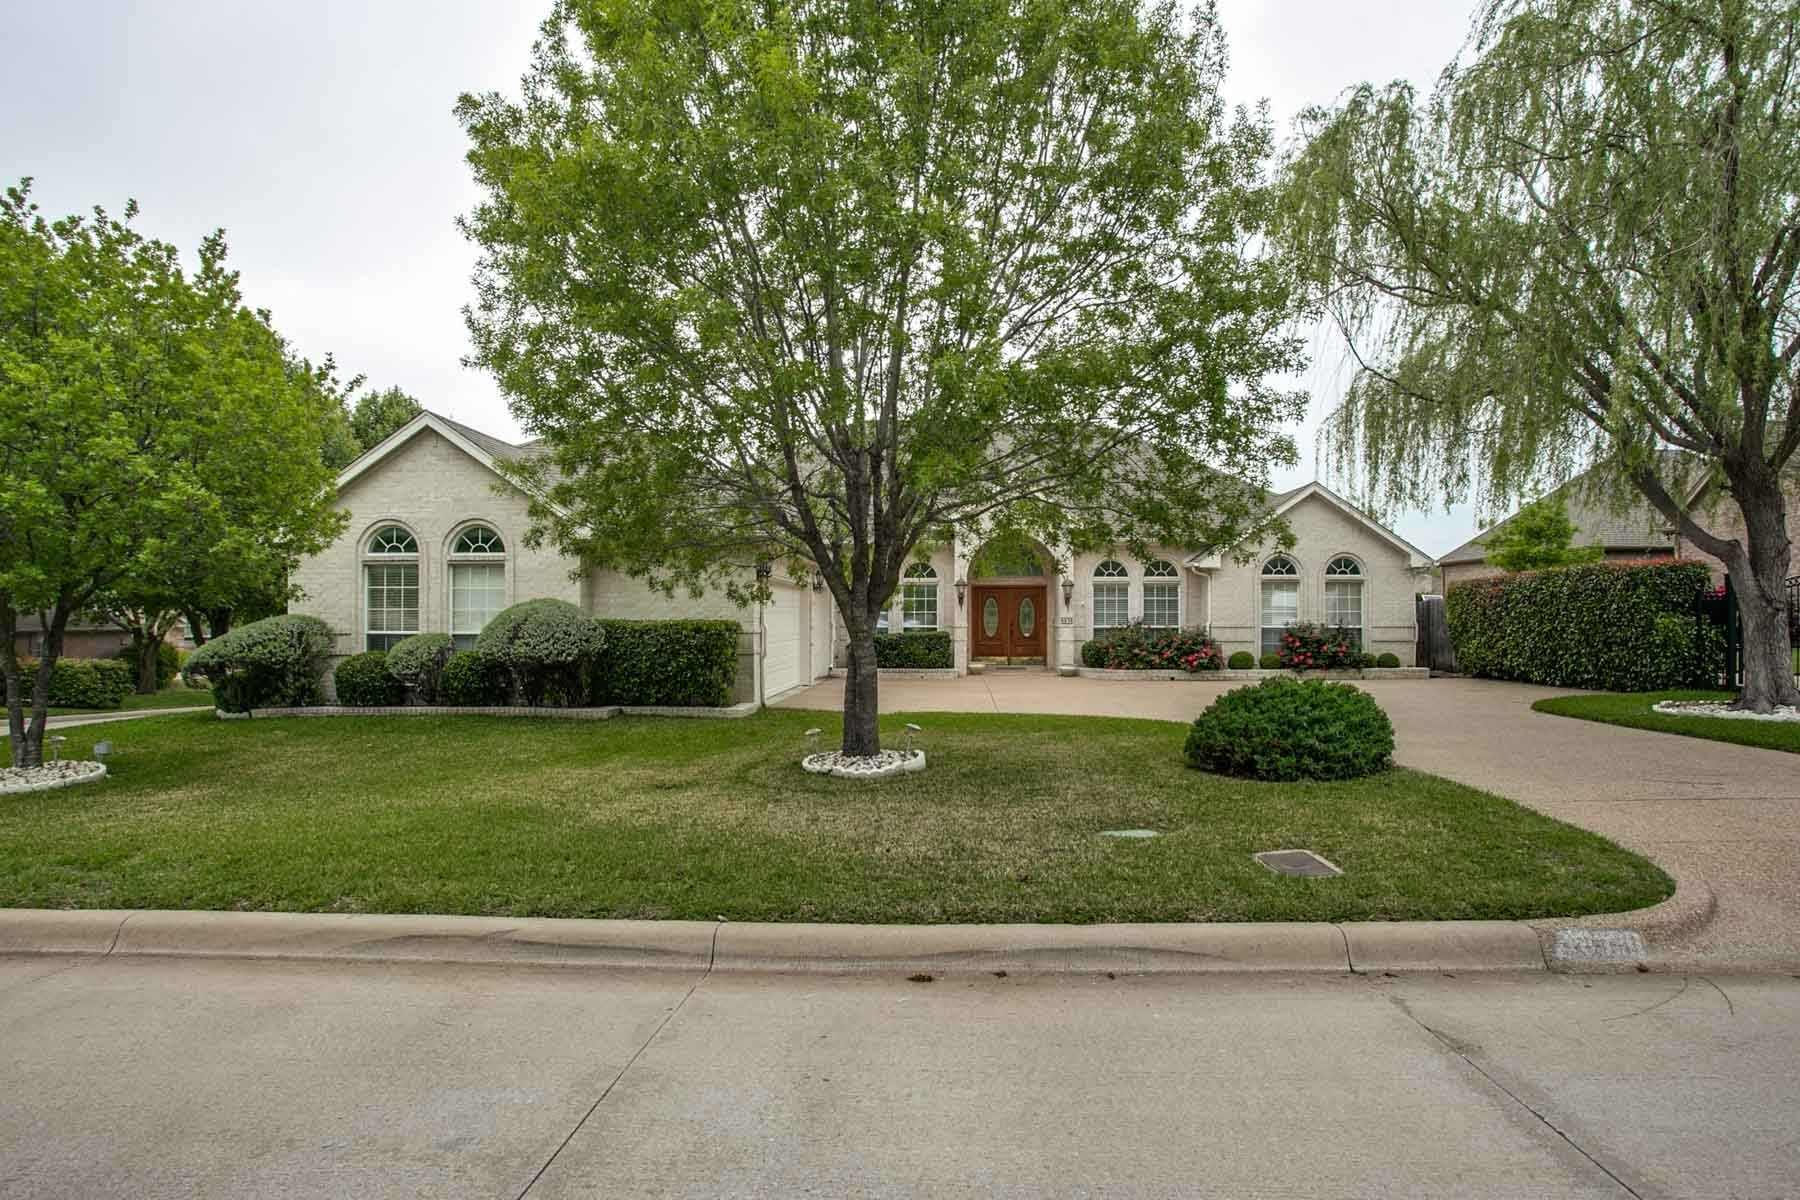 Single Family Home for Sale at Immaculately Maintained One-Story Home 6936 Vista Ridge Court Fort Worth, Texas, 76132 United States